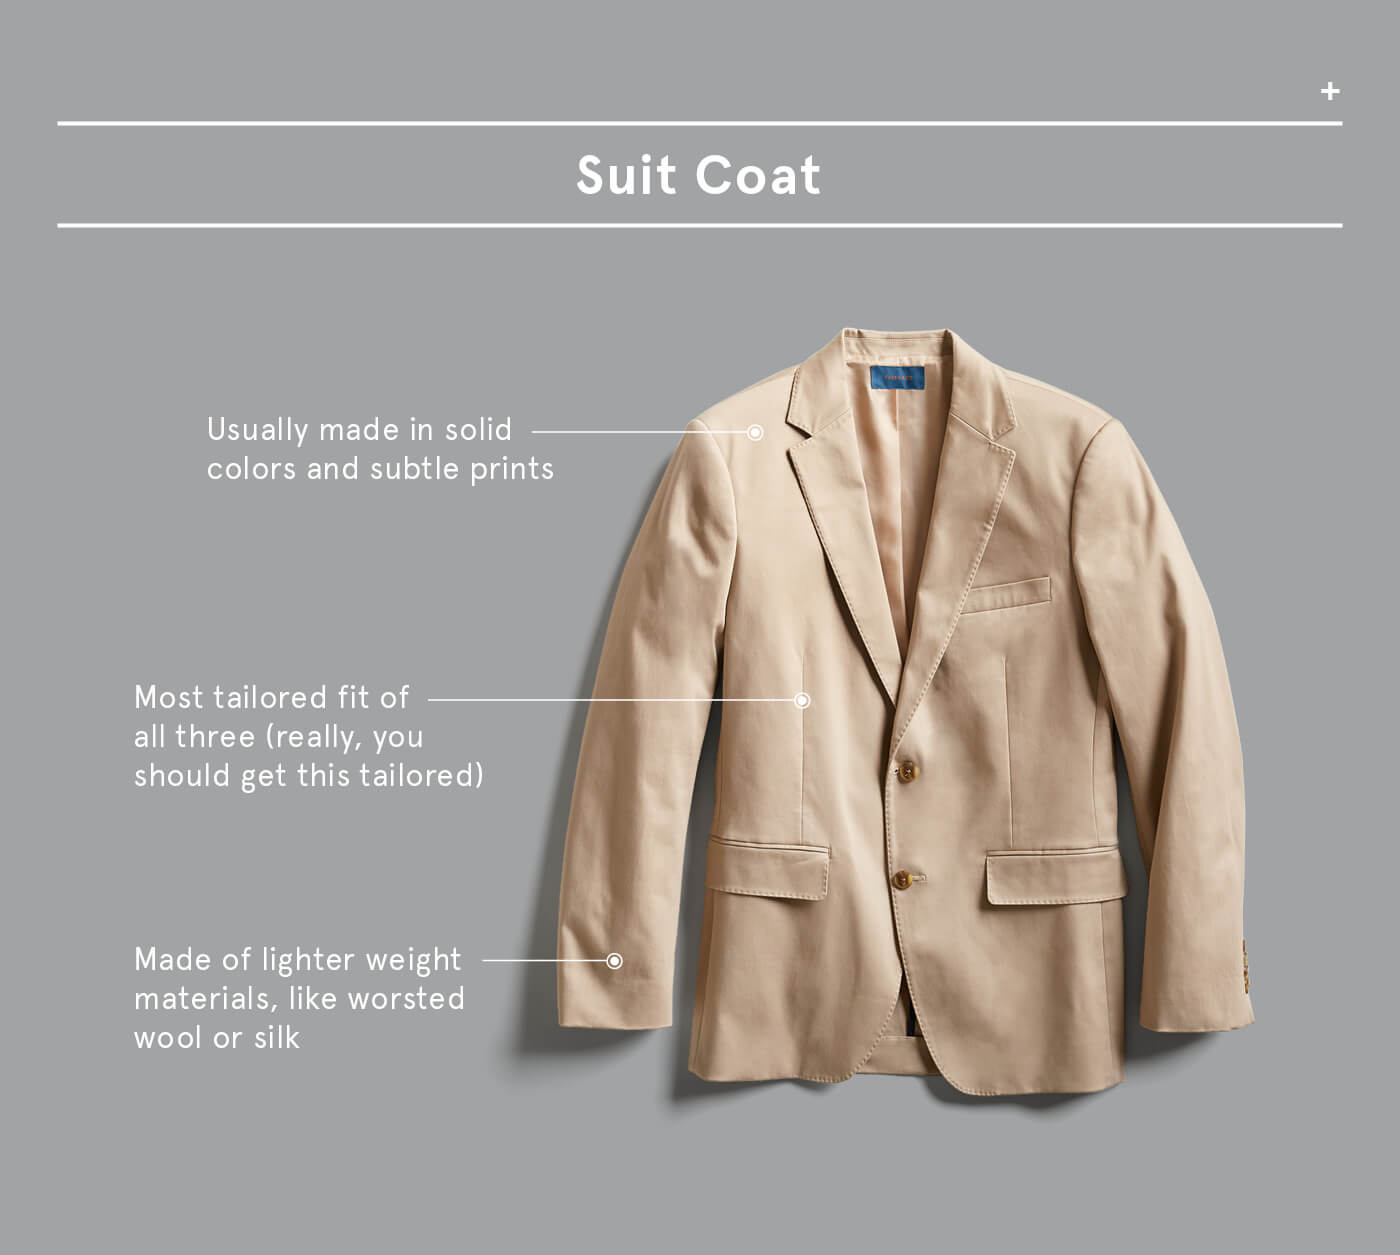 Difference Between Sport coat, blazer and suit coat